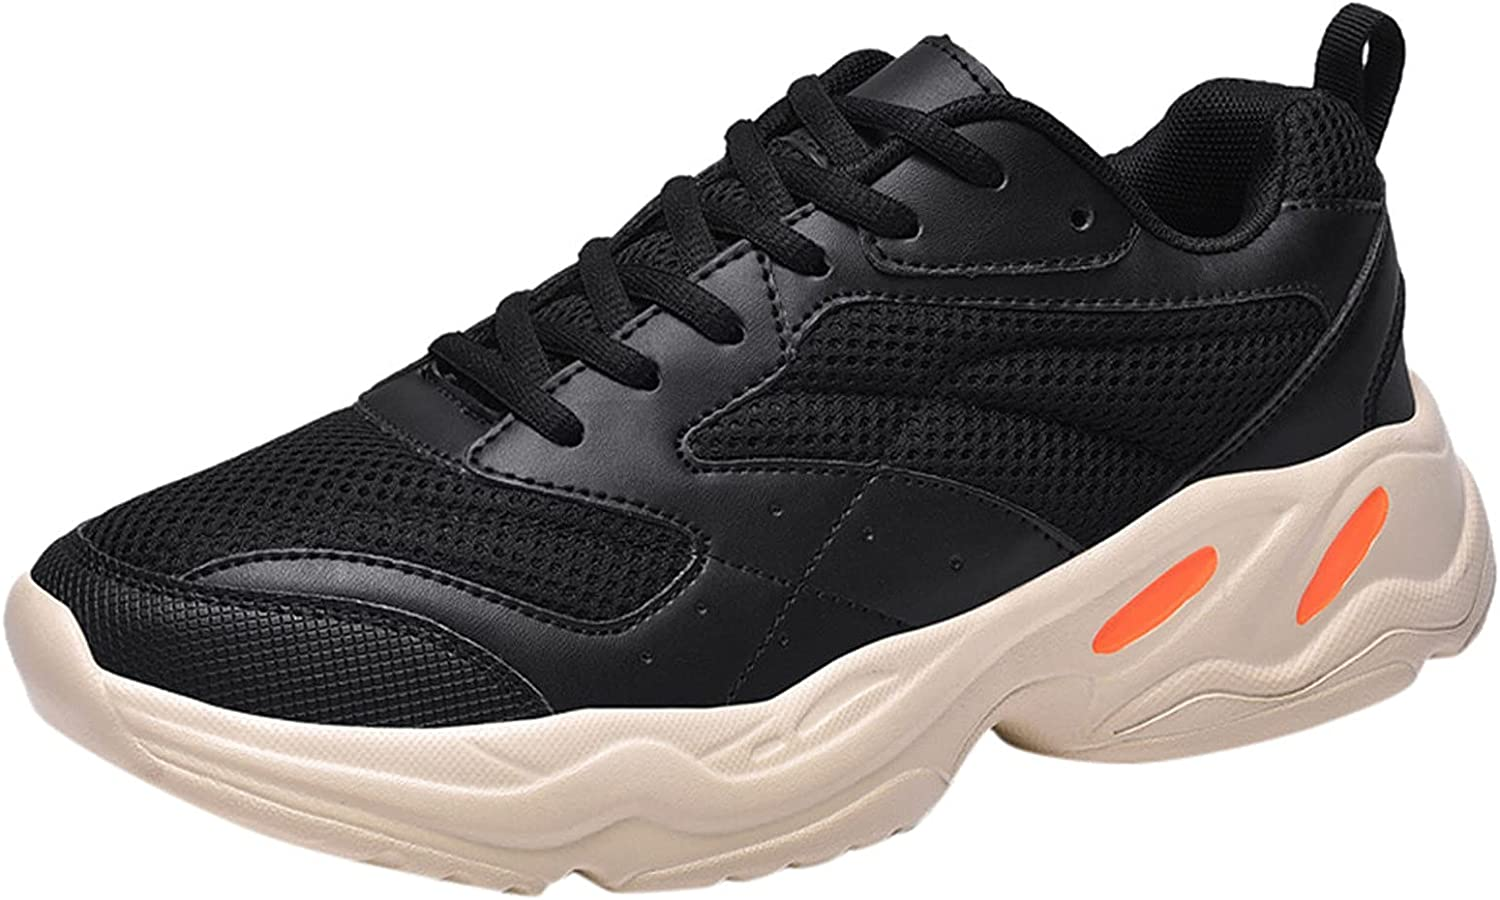 SHYSHY Phoenix Mall Mens Breathable Running Shoes Cushion Free shipping New Lightweight Air Wal